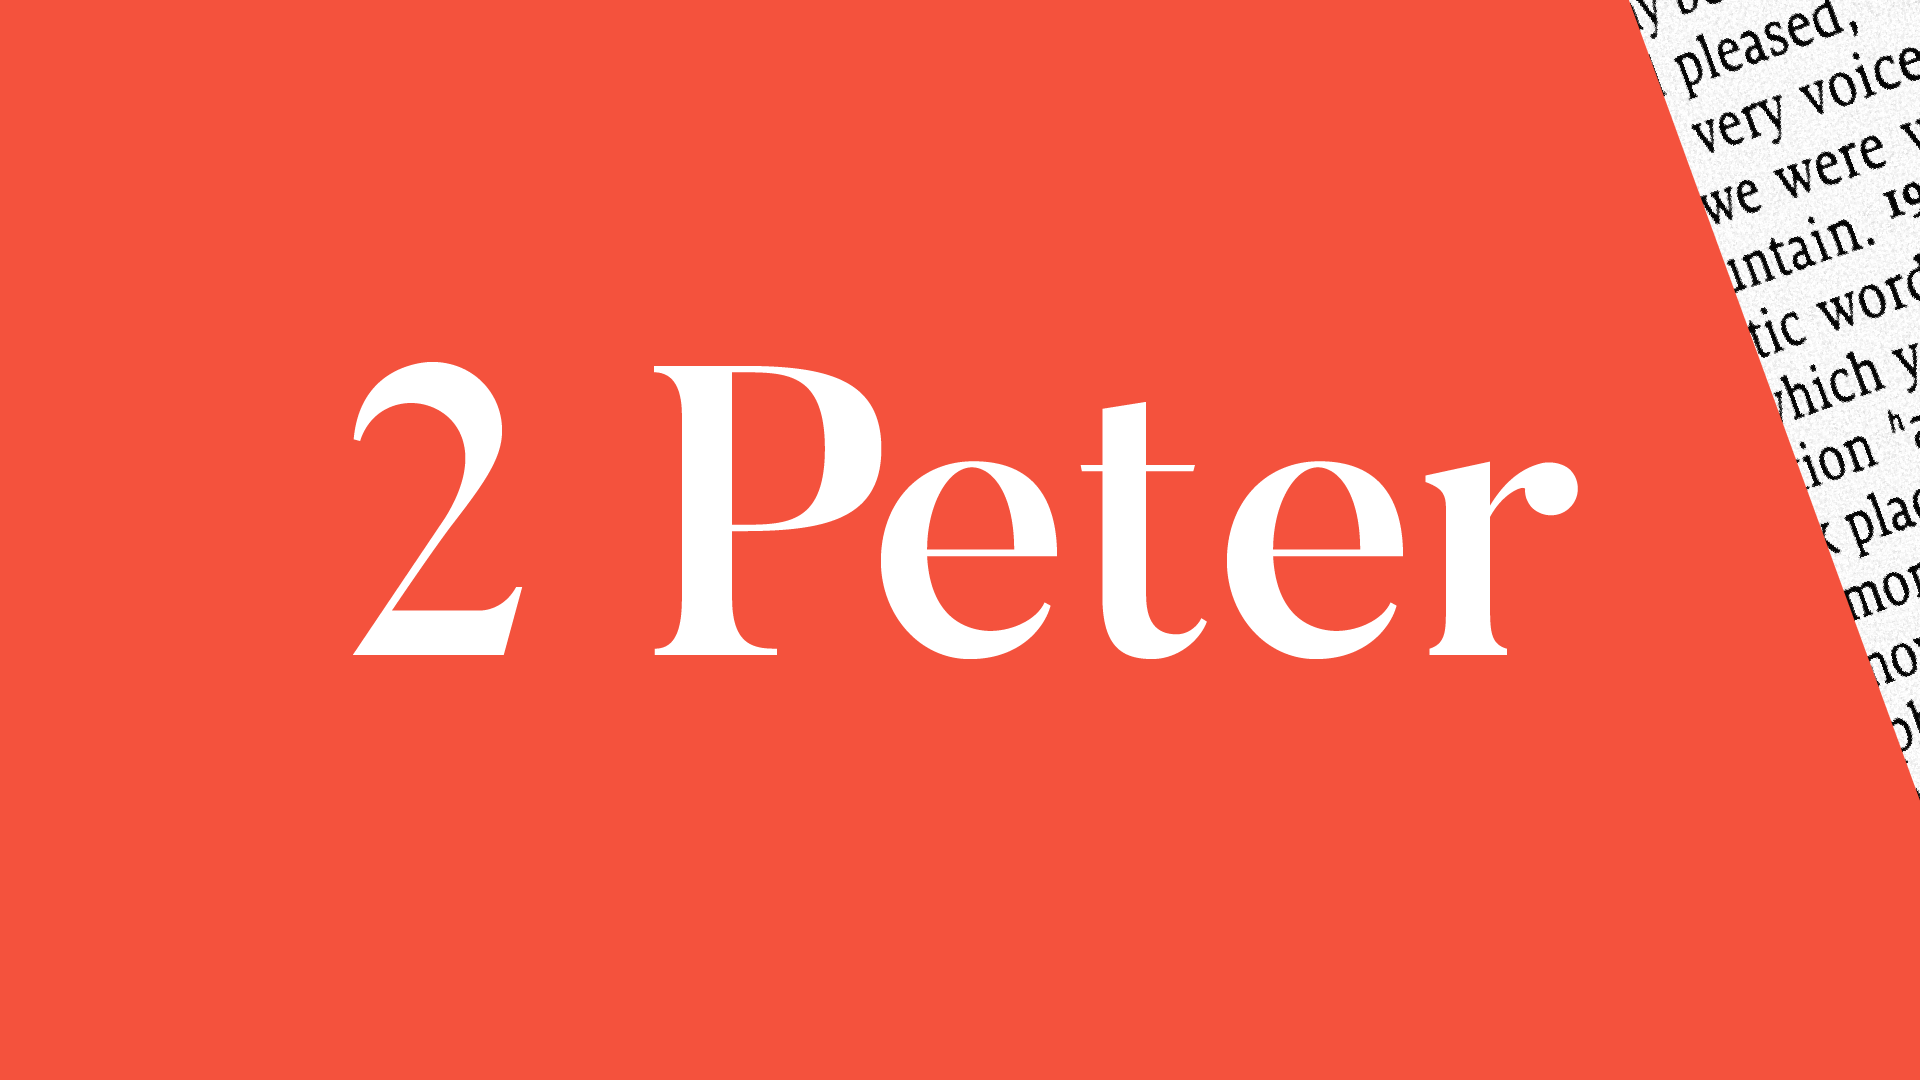 2 Peter Sermon Art_1920x1080.png